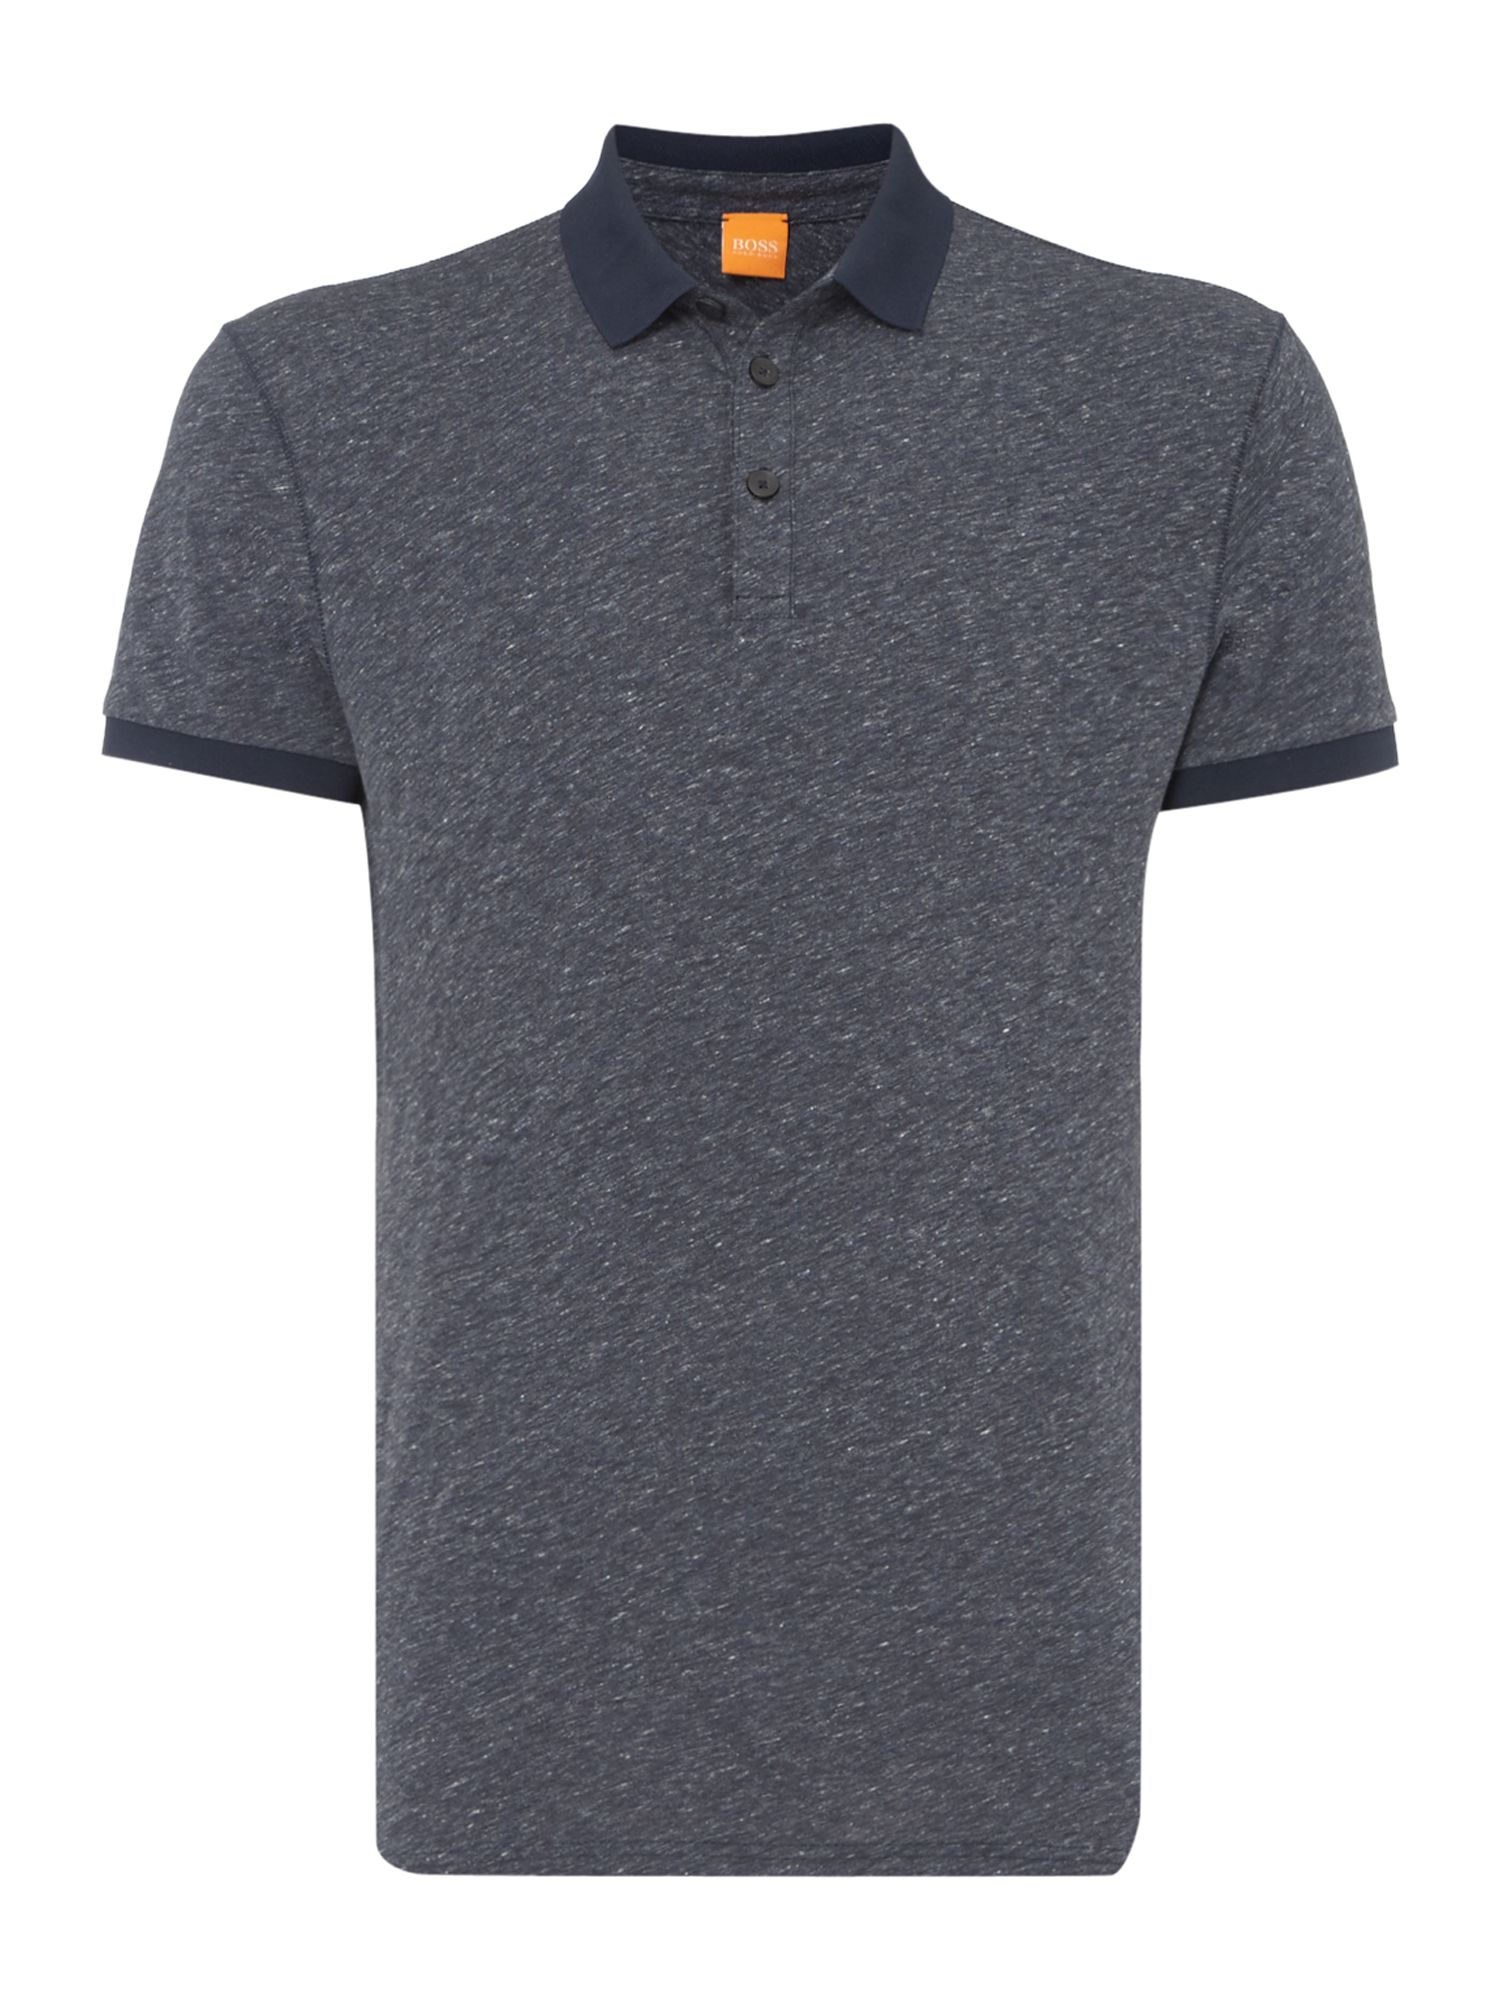 Men's Hugo Boss Regular Fit Short-Sleeve Polo Shirt, Blue Marl